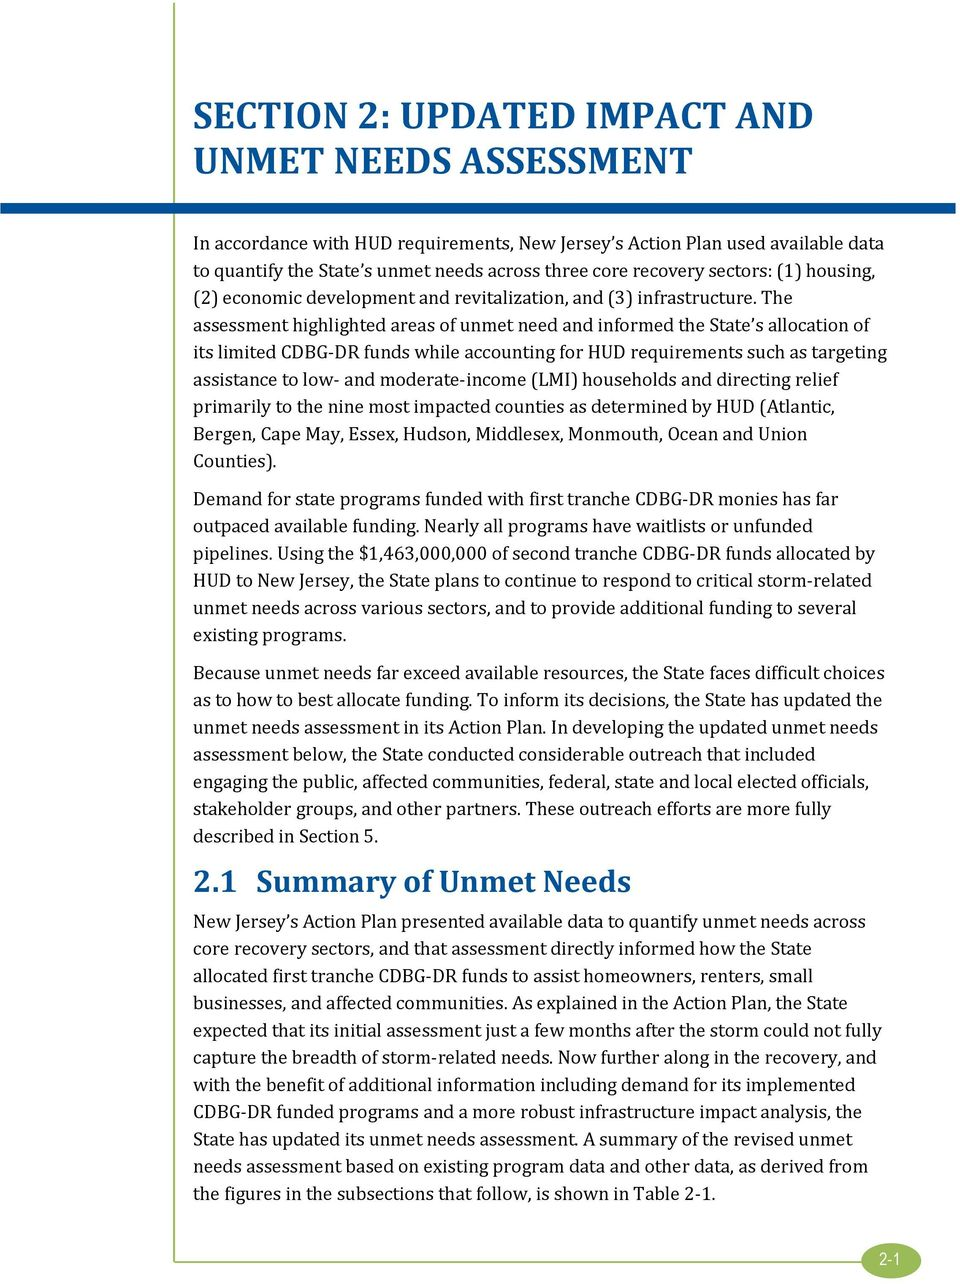 The assessment highlighted areas of unmet need and informed the State s allocation of its limited CDBG-DR funds while accounting for HUD requirements such as targeting assistance to low- and